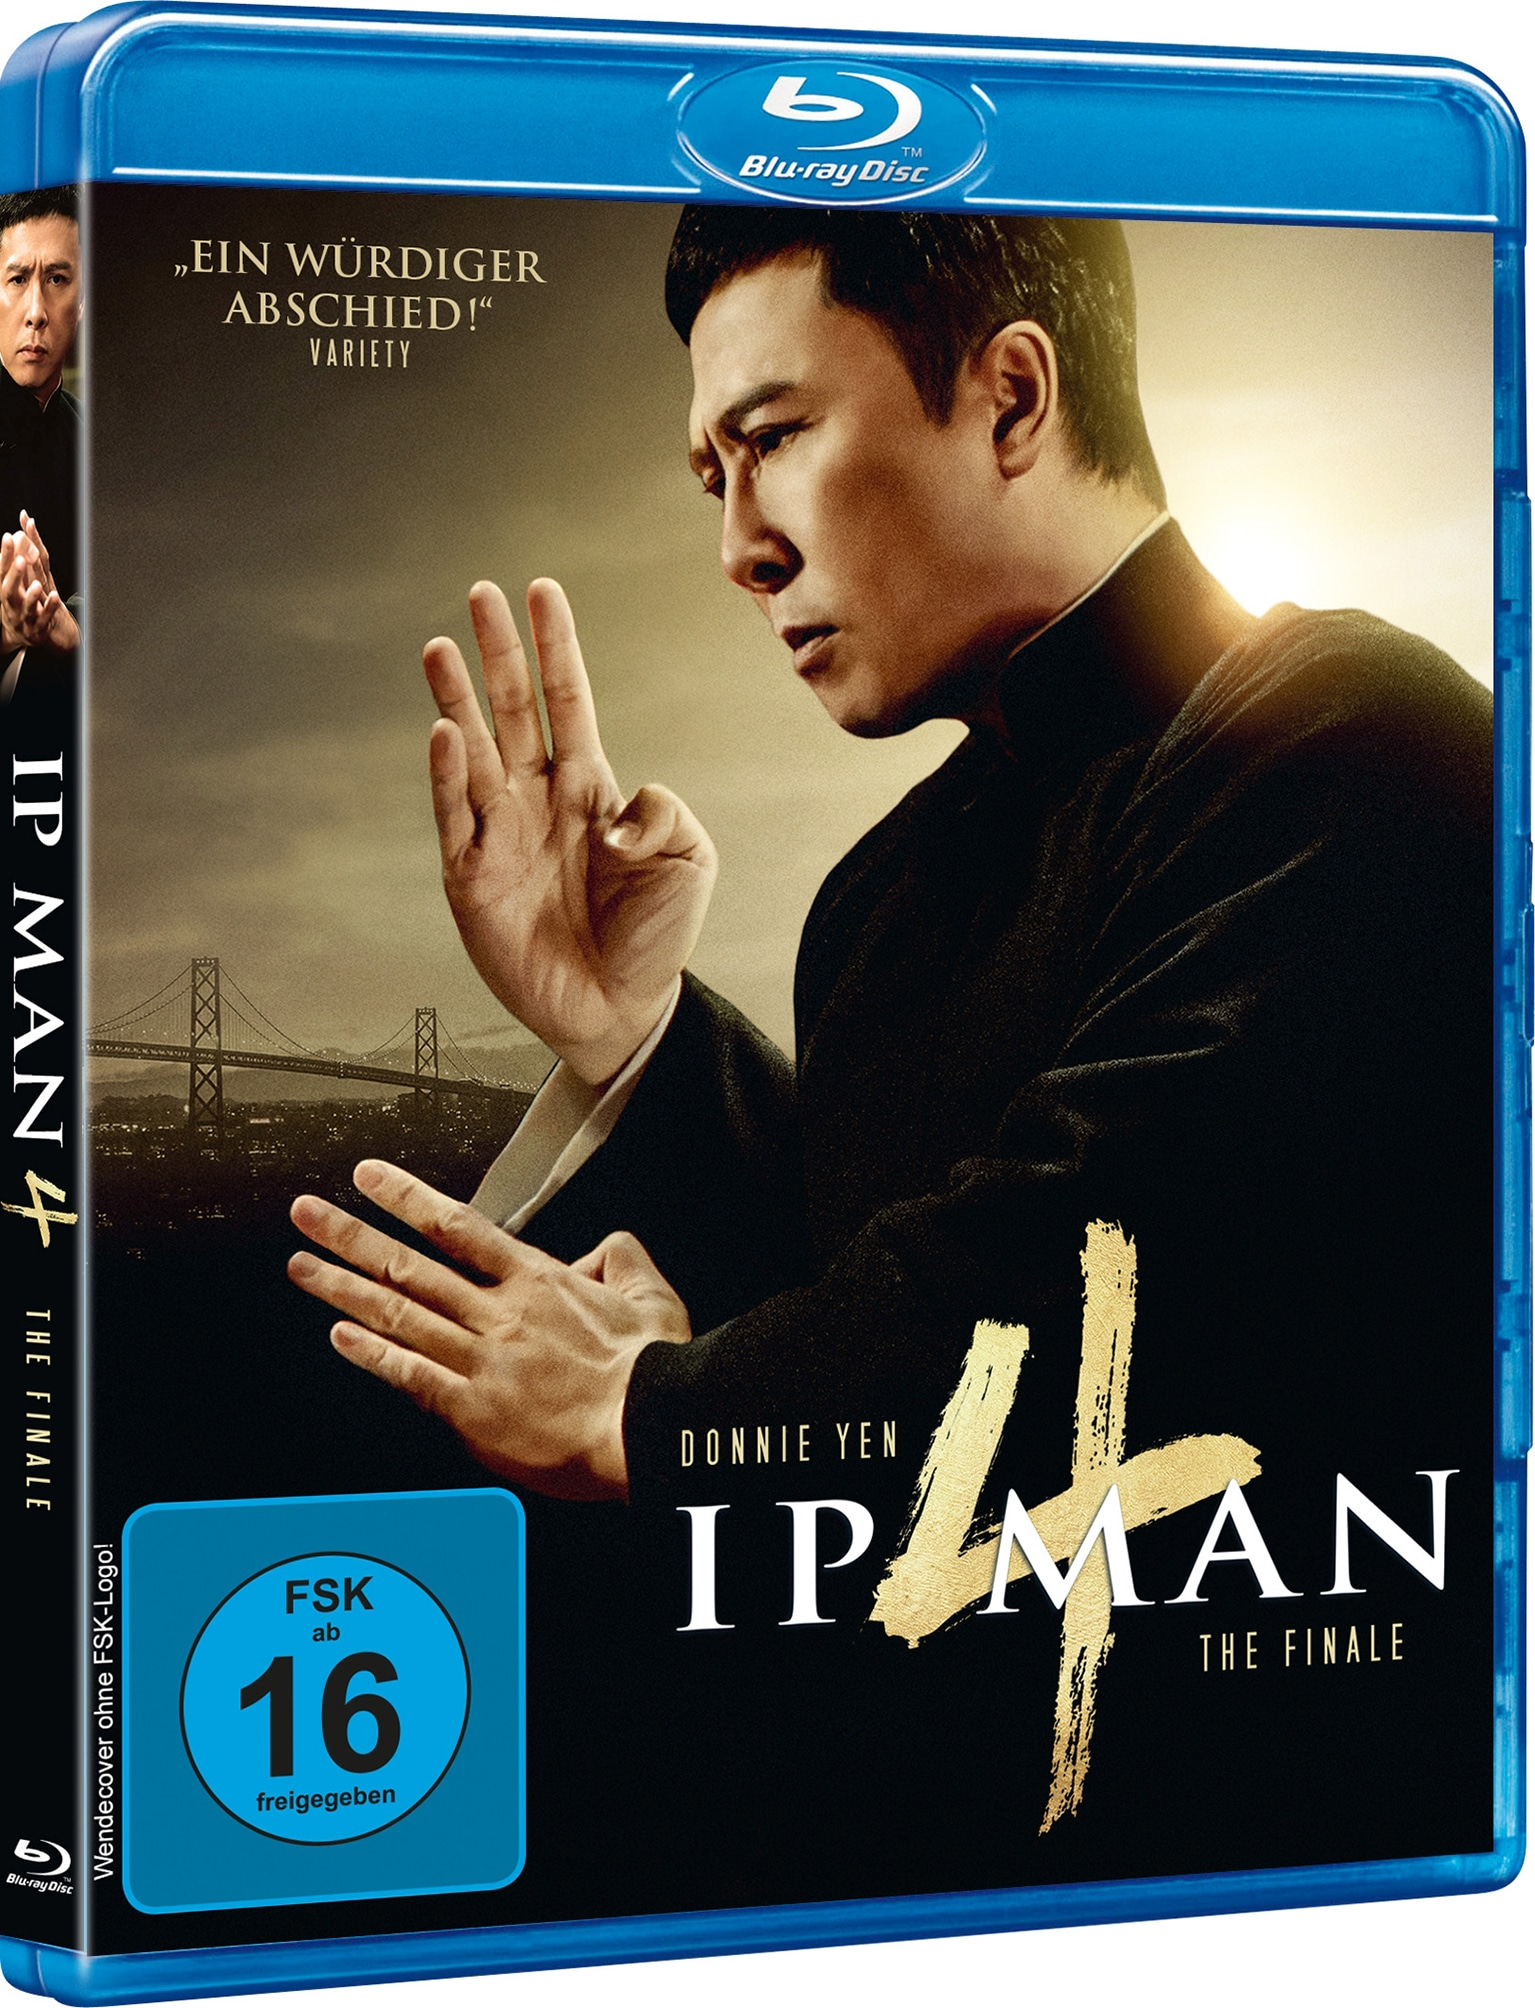 Das Blu-ray Cover von Ip Man 4: The Finale zeigt Donnie Yen in der Titelrolle des Ip Man. Er trägt traditionelle chinesische Kleidung und steht in kampfbereiter Pose.